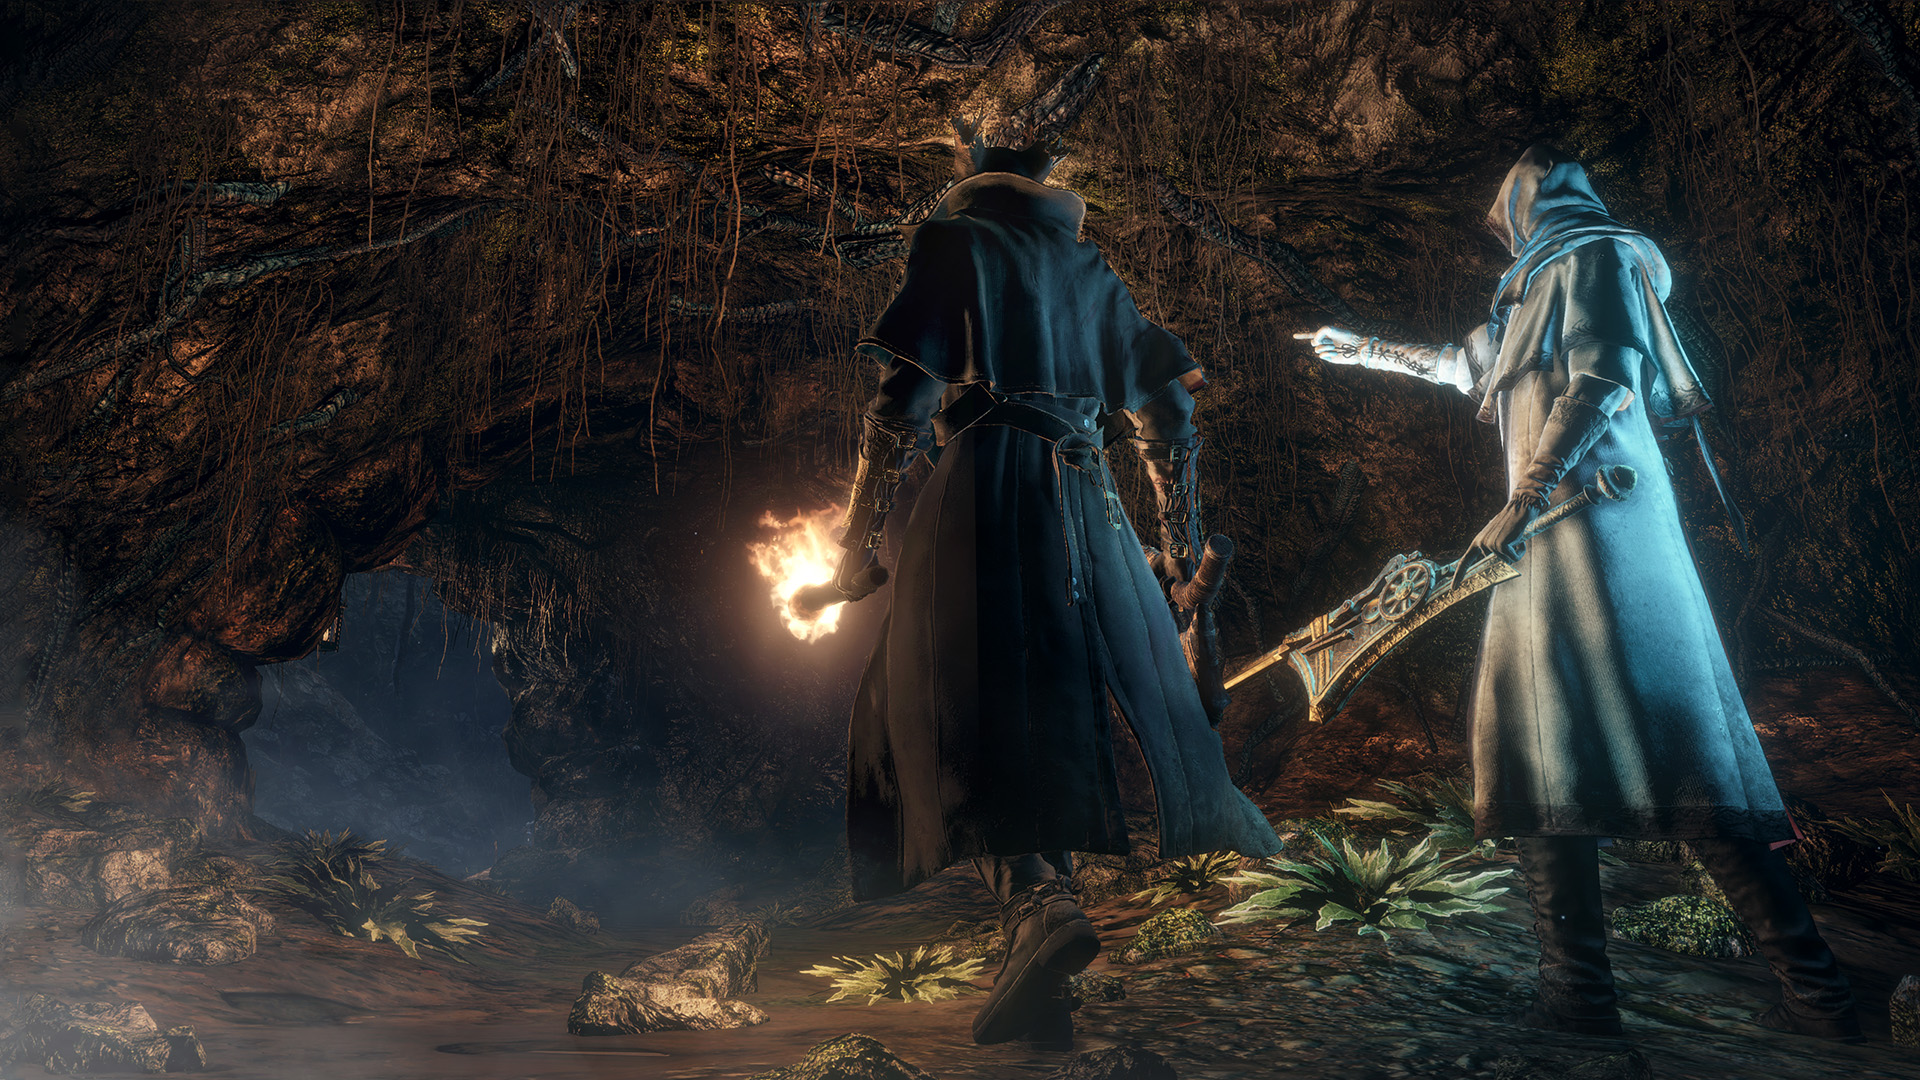 Welcome to Bloodborne: Here's what I wish I'd known from the start